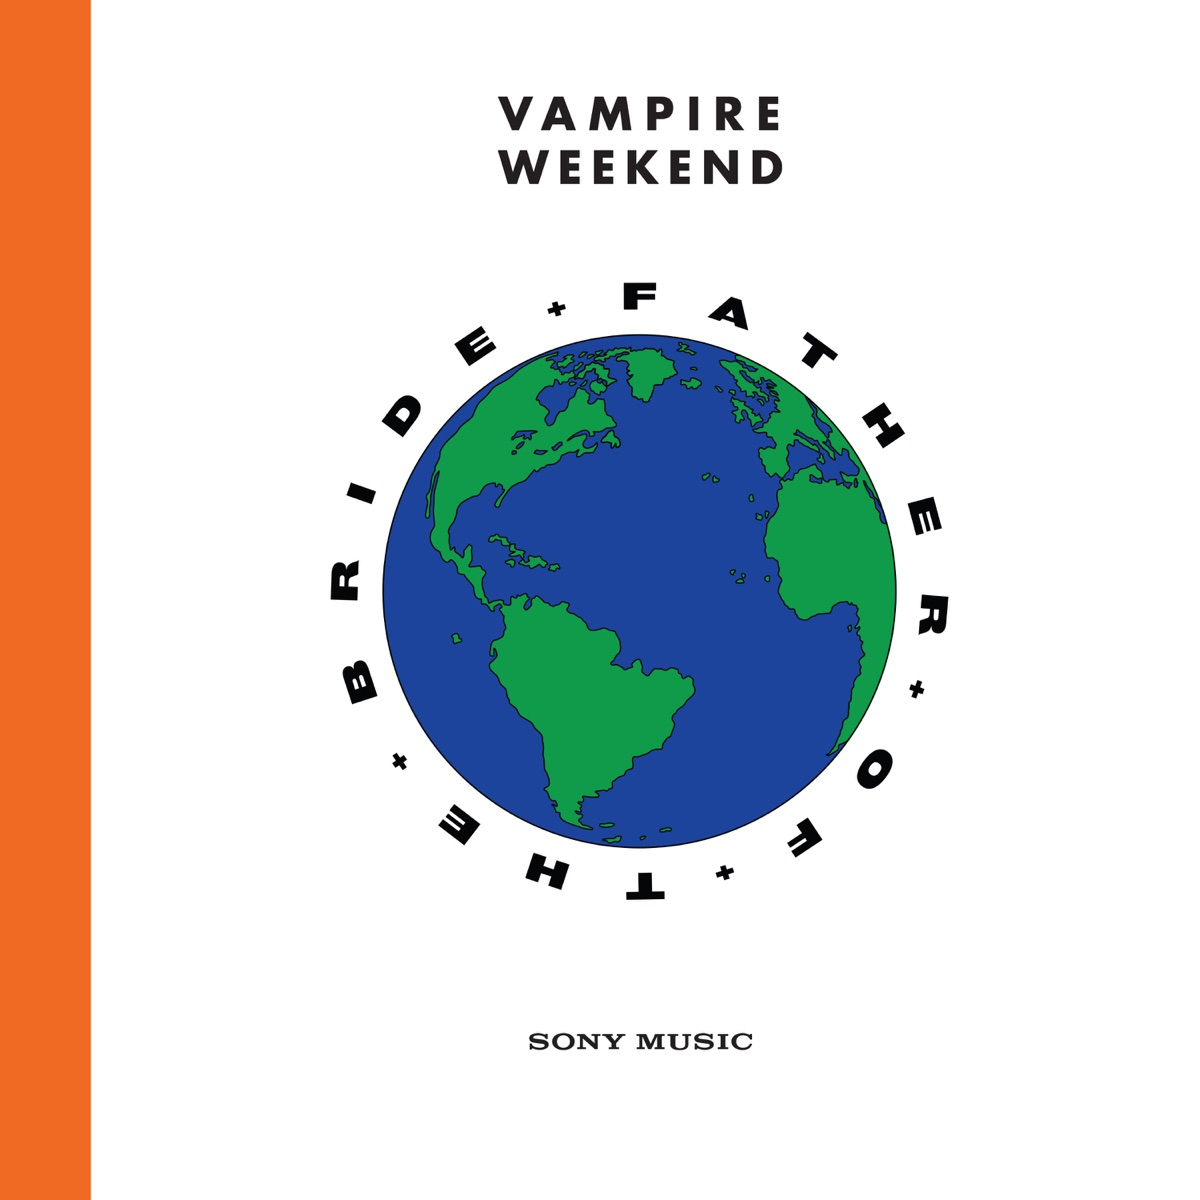 Father of the Bride Vampire Weekend CD cover